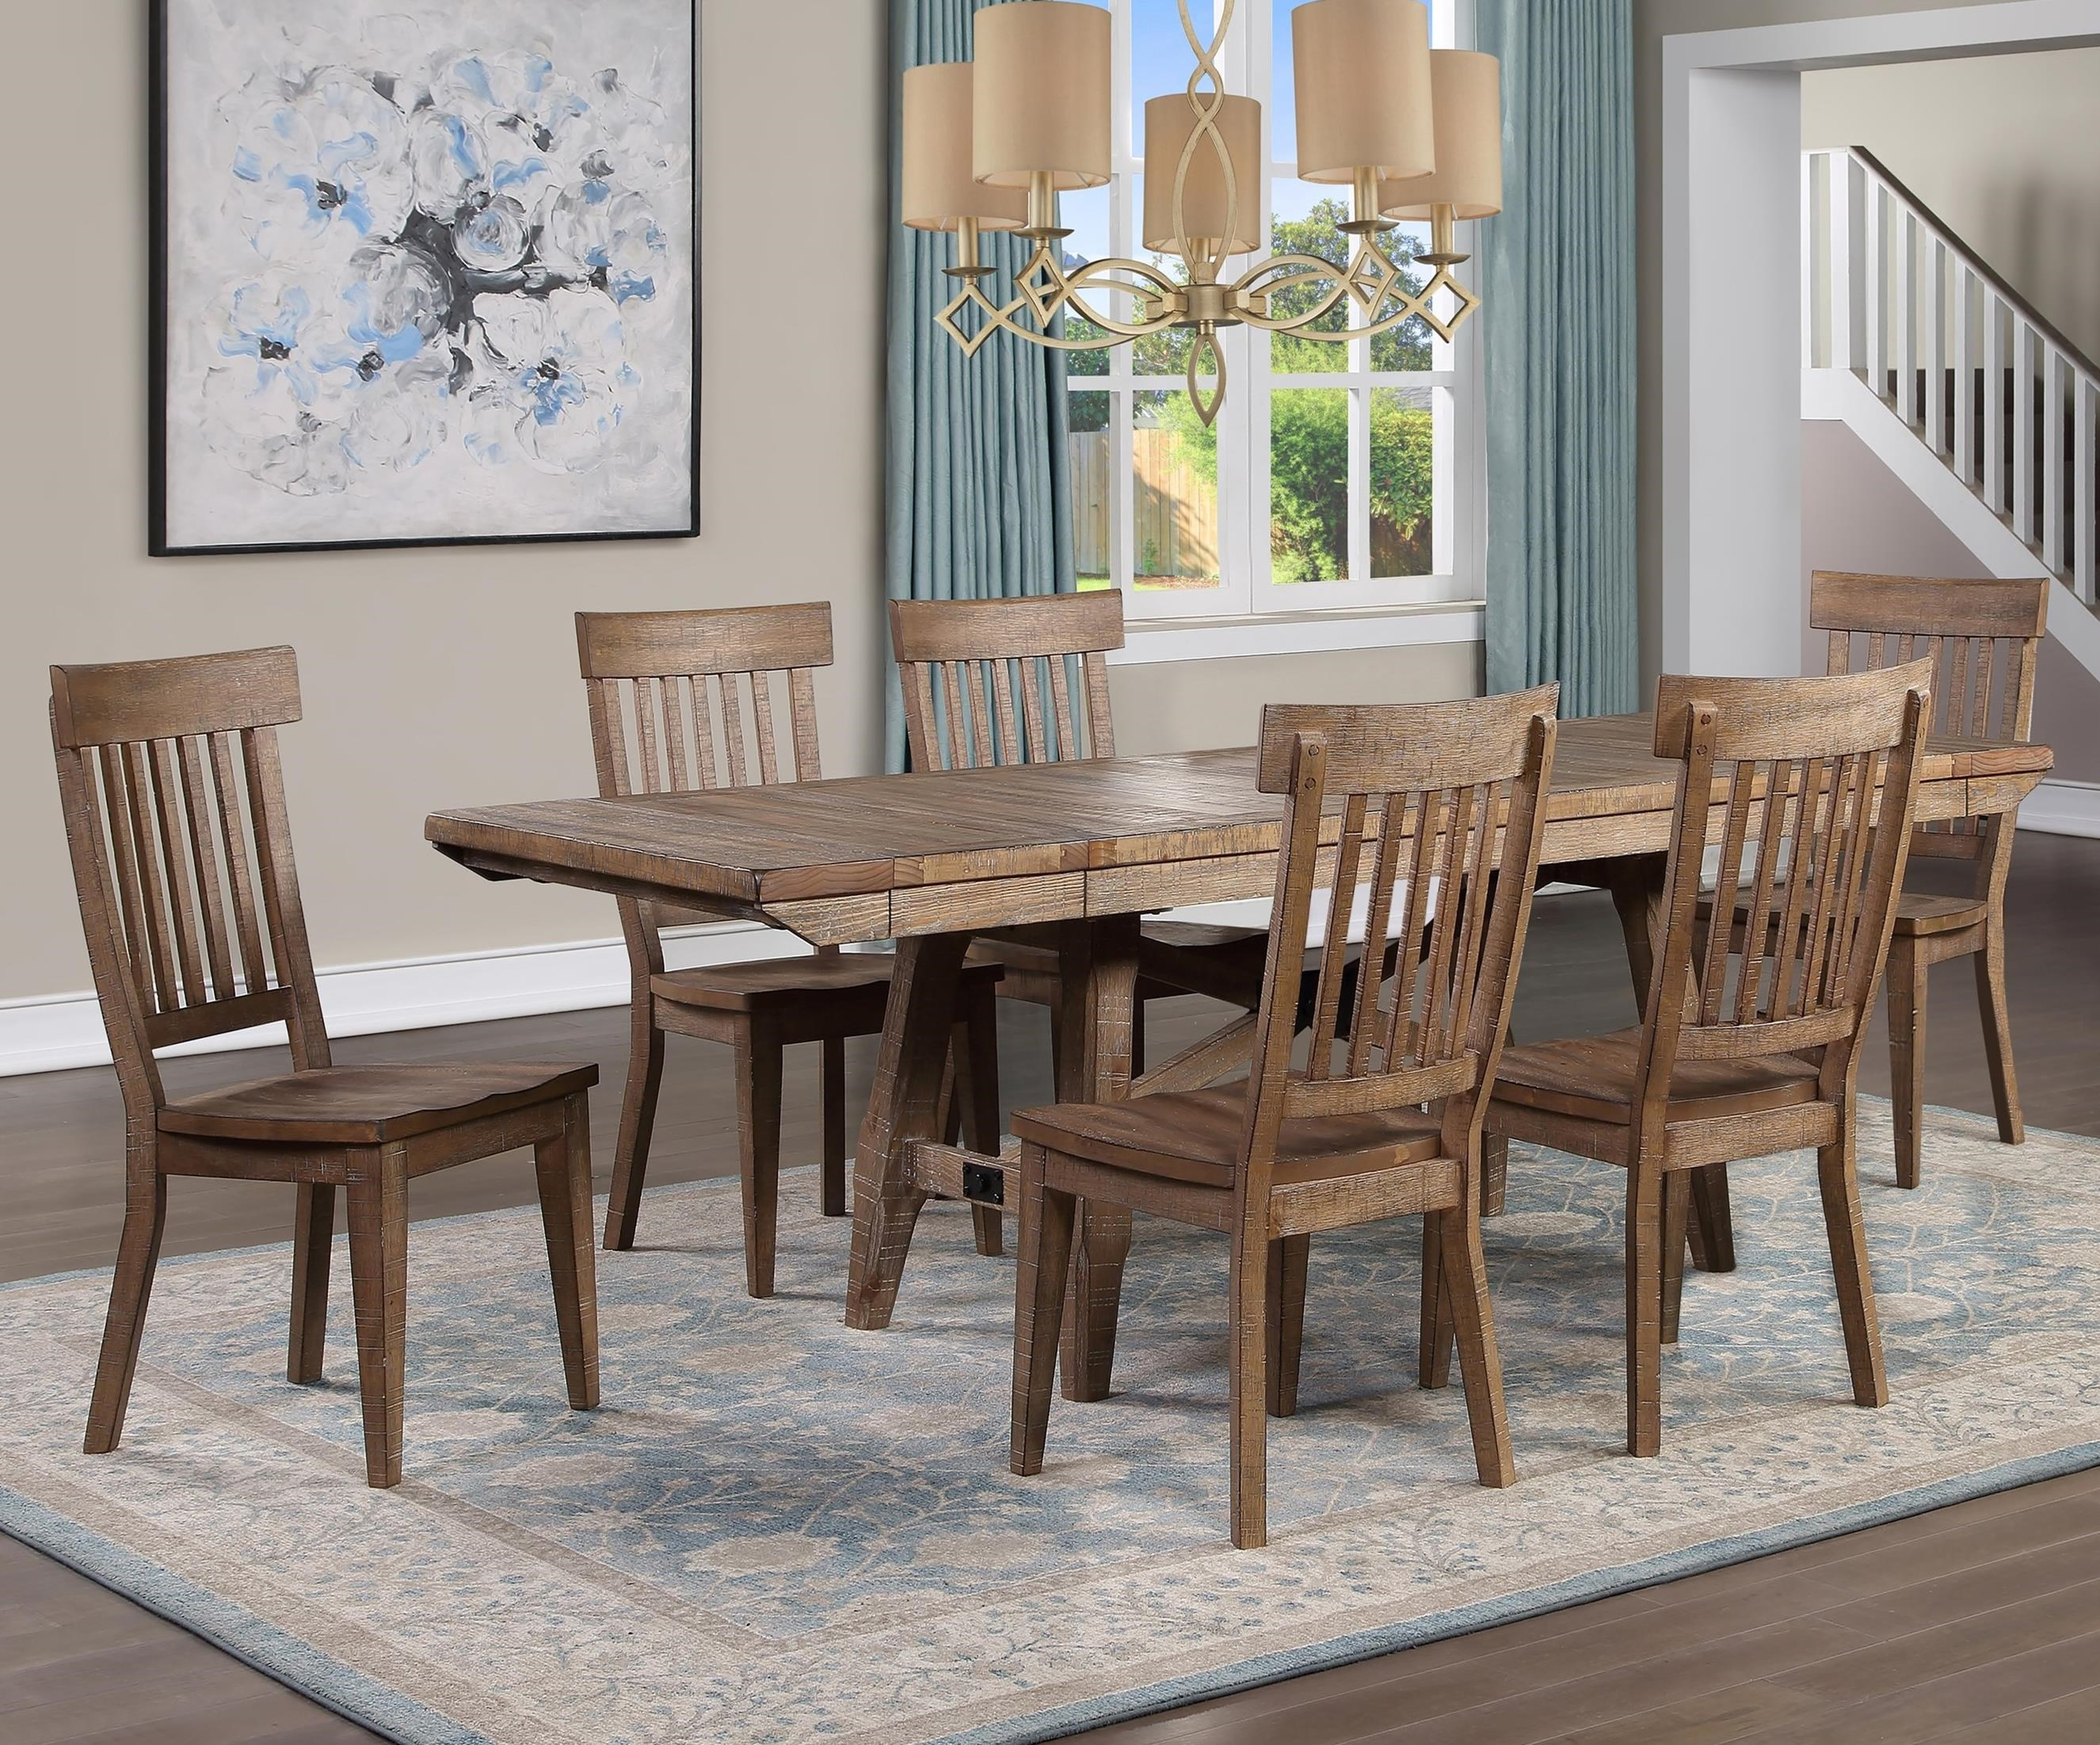 Riverdale 7-Piece Dining Table Set by Steve Silver at Walker's Furniture